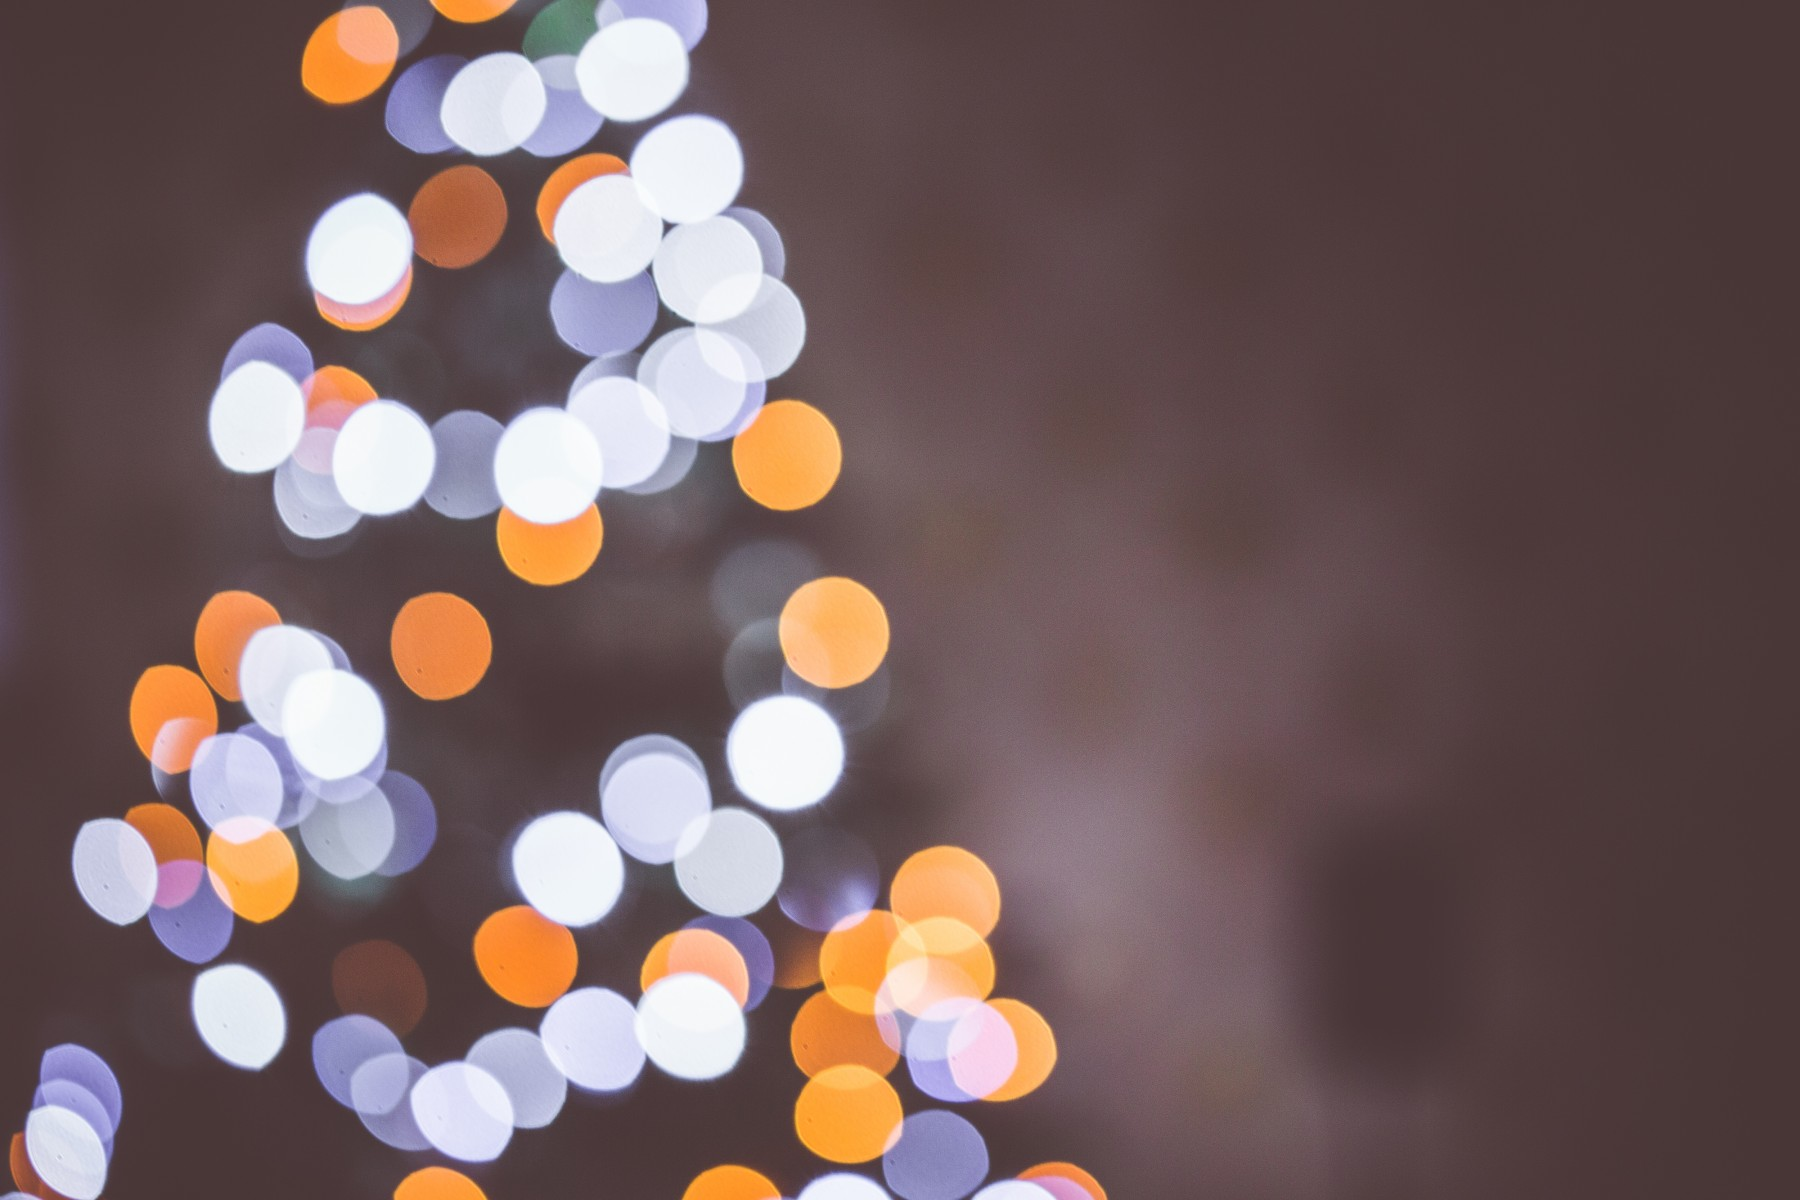 Merry Christmas from all of us at WebDepend